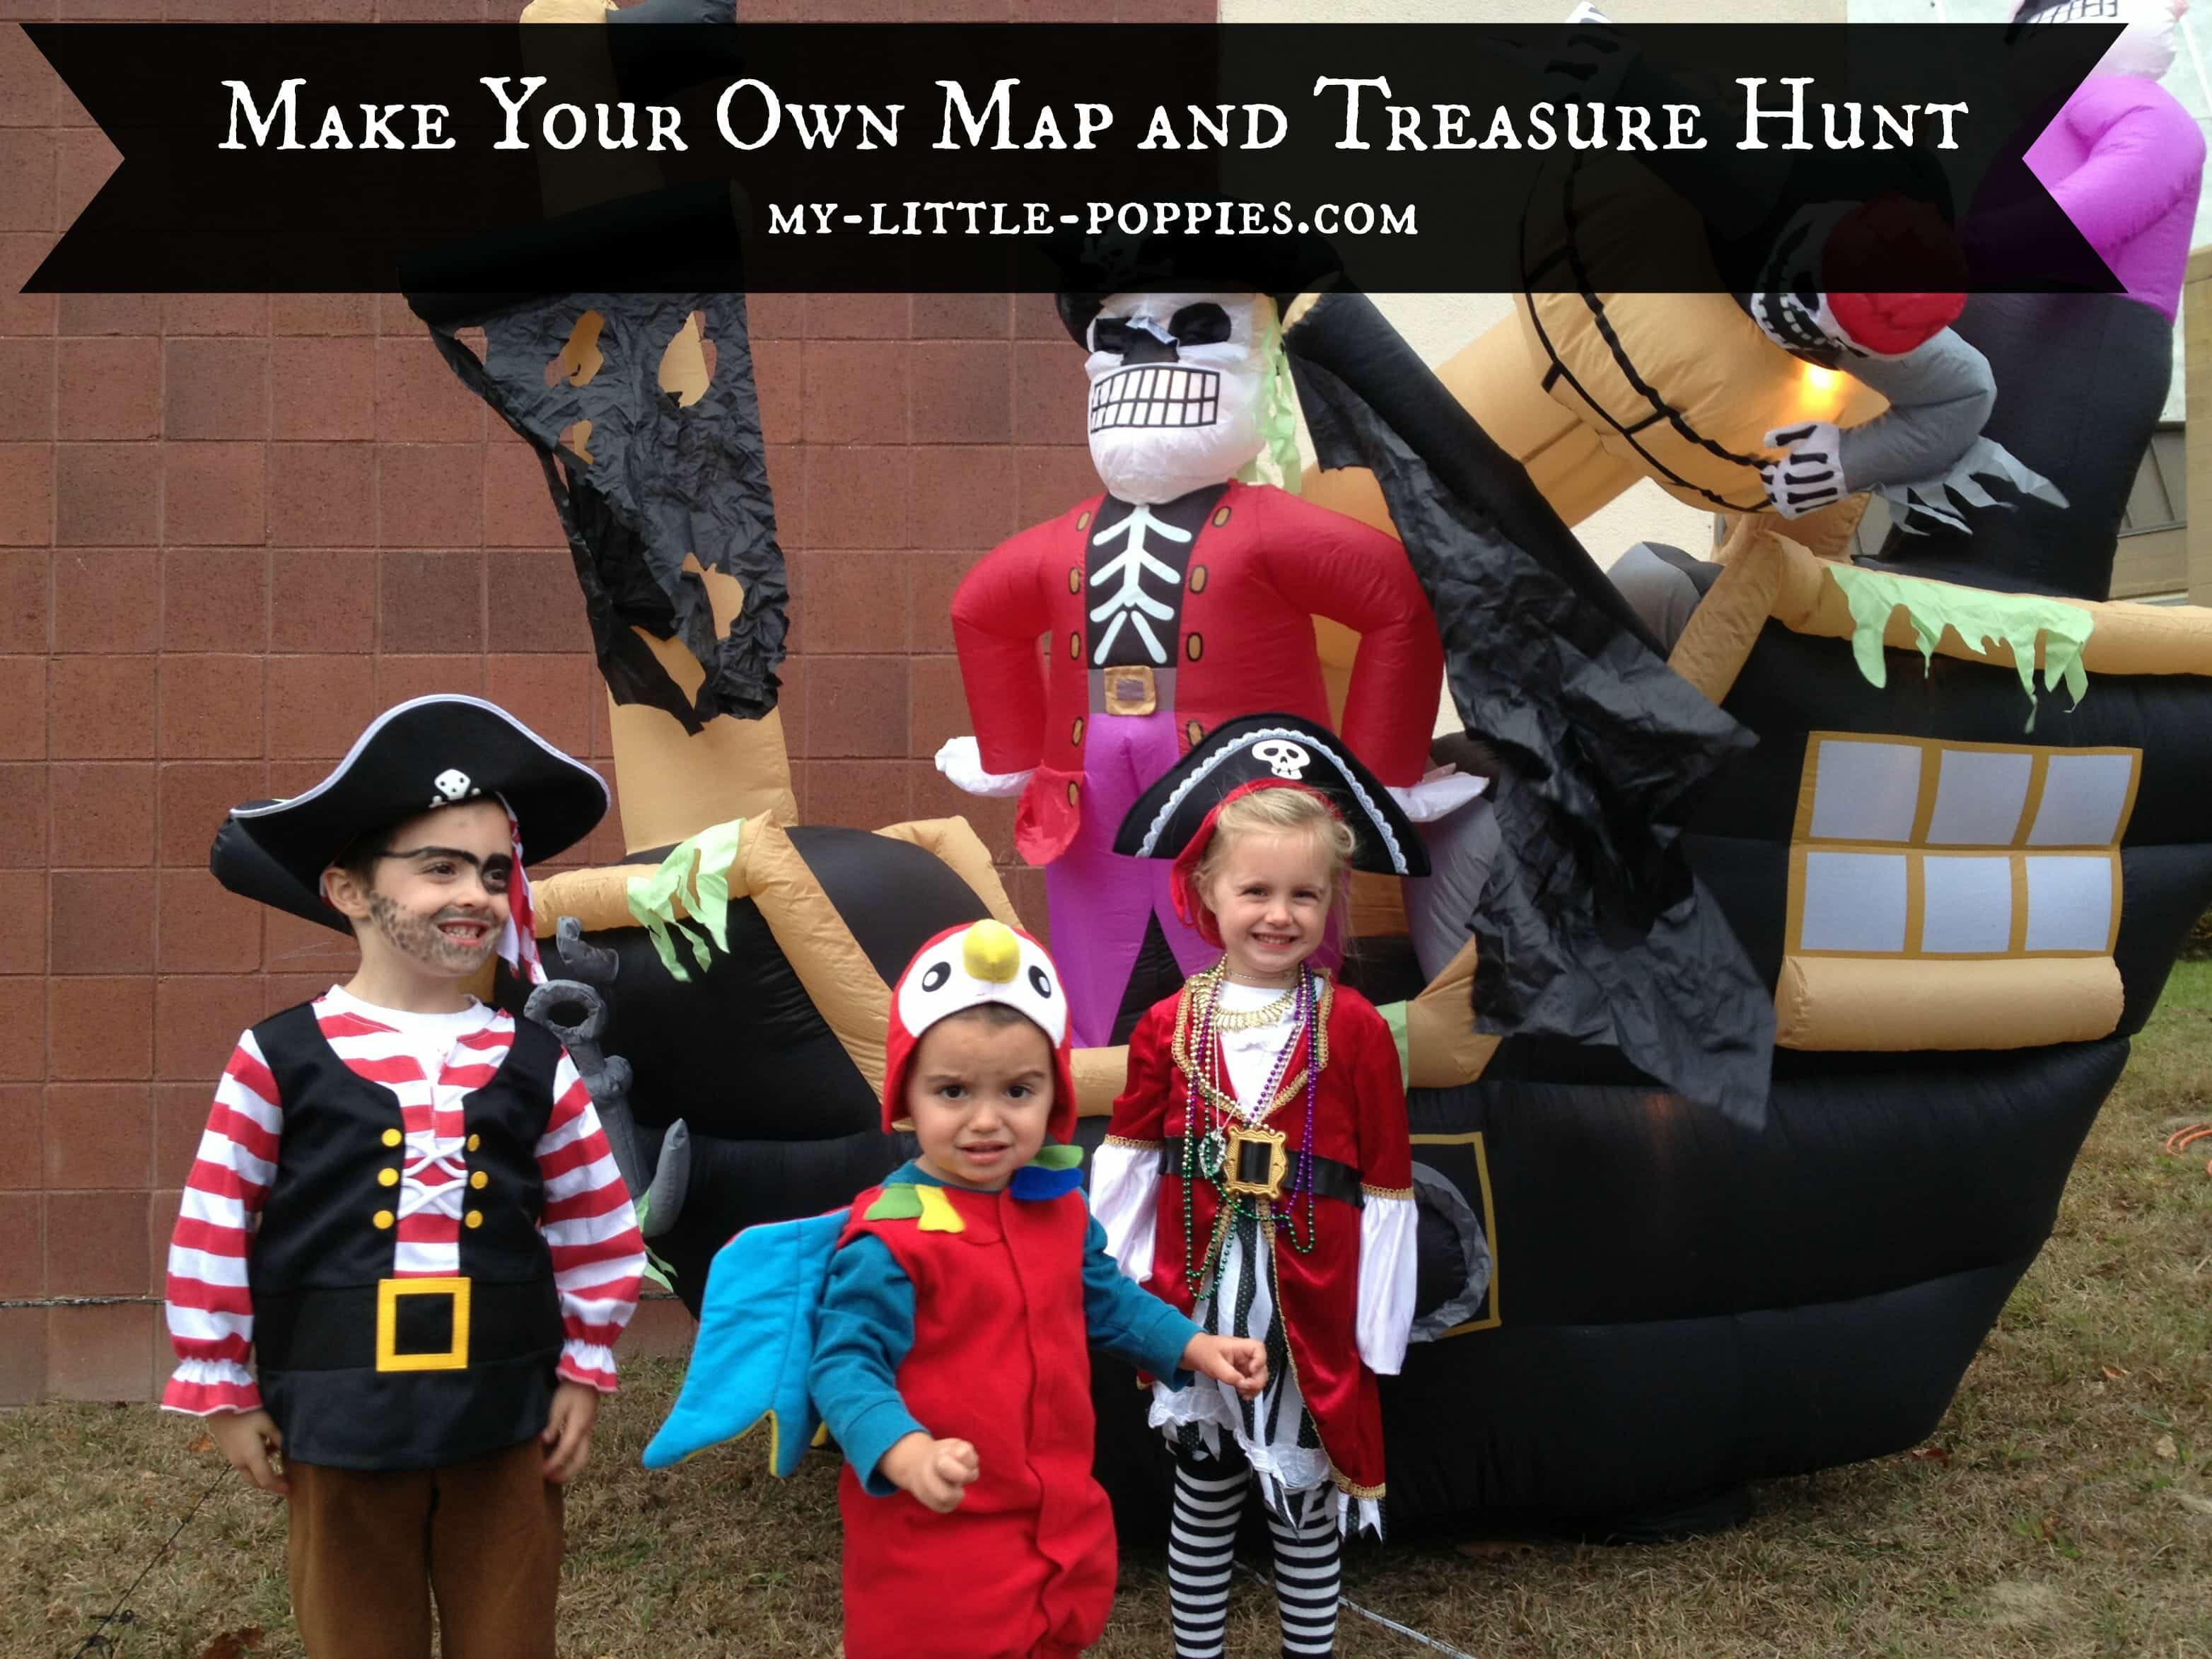 Make Your Own Map and Treasure Hunt